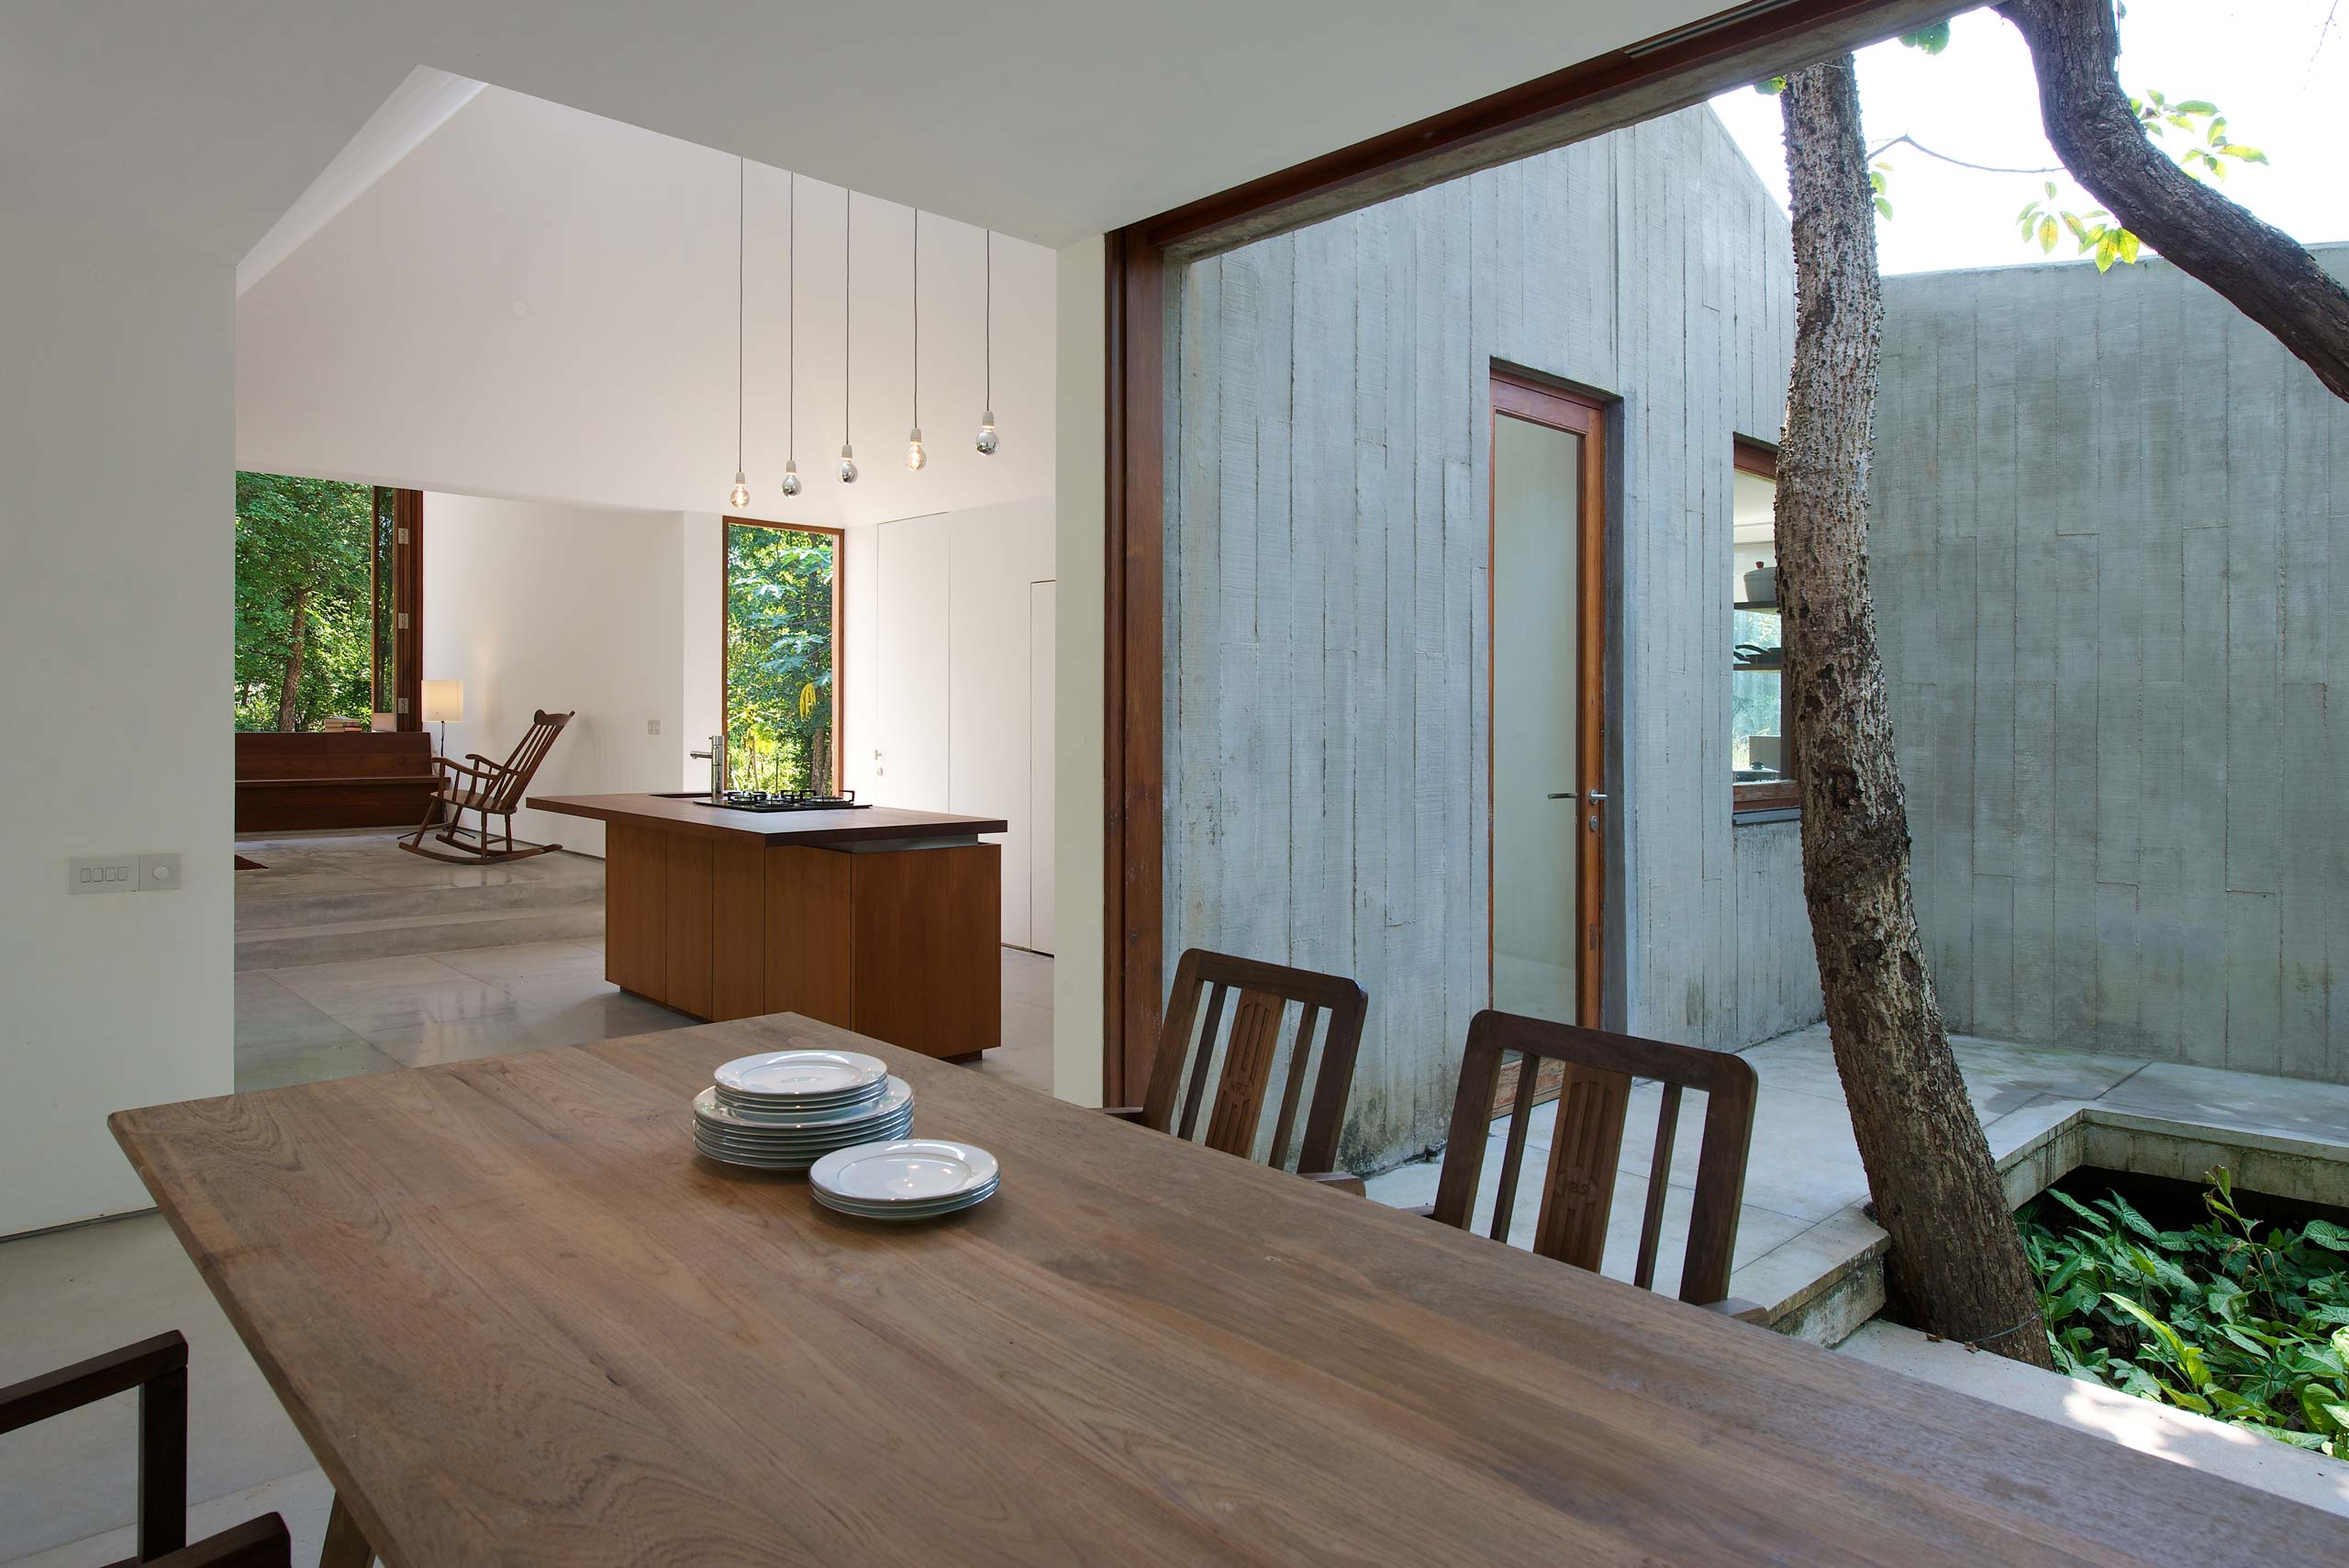 dining room island kitchen and courtyard house on a stream Alibaug india